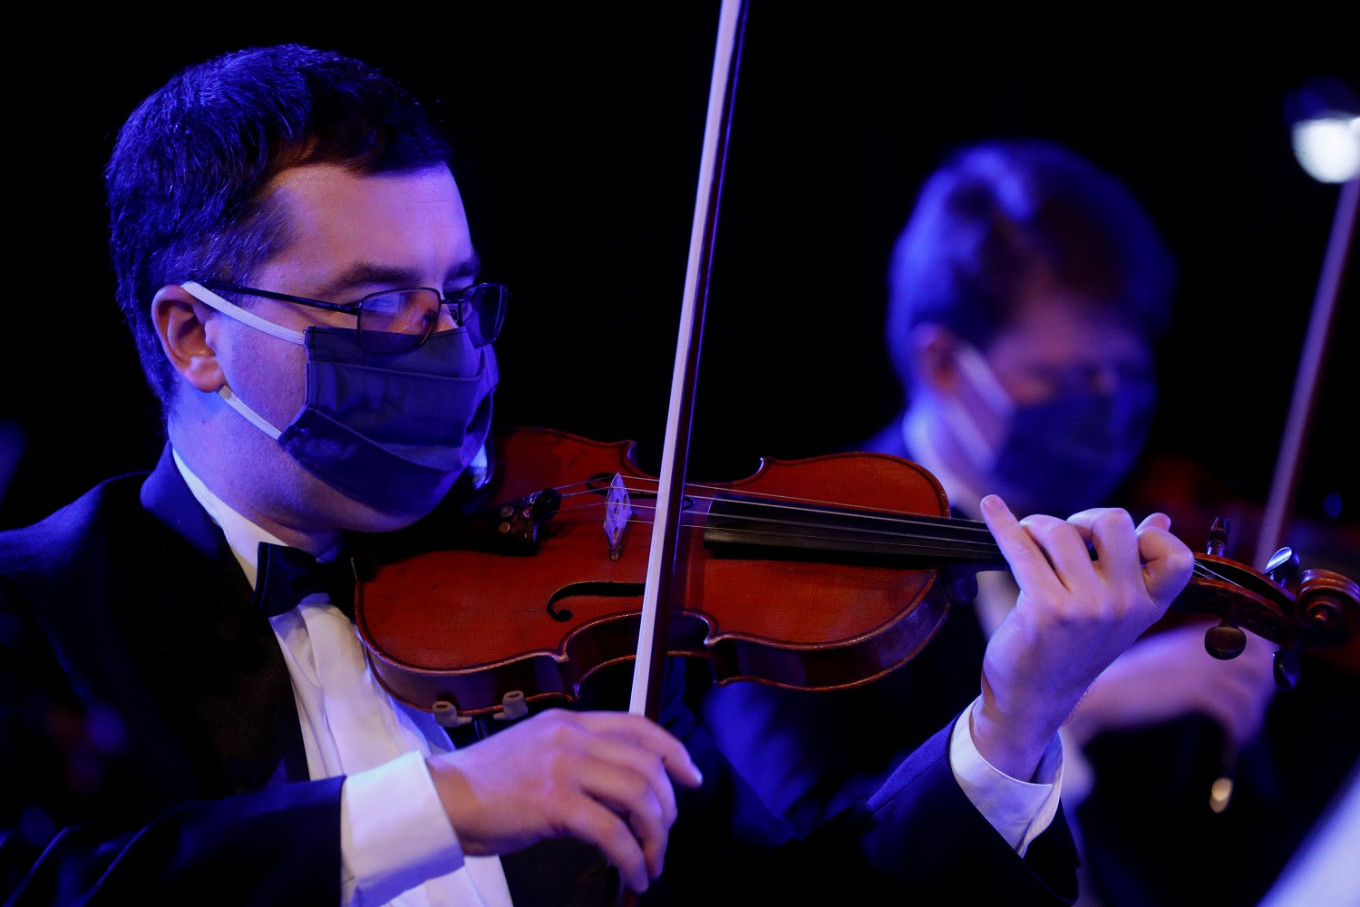 Masked Ukrainian orchestra makes concert recording as lockdown eases